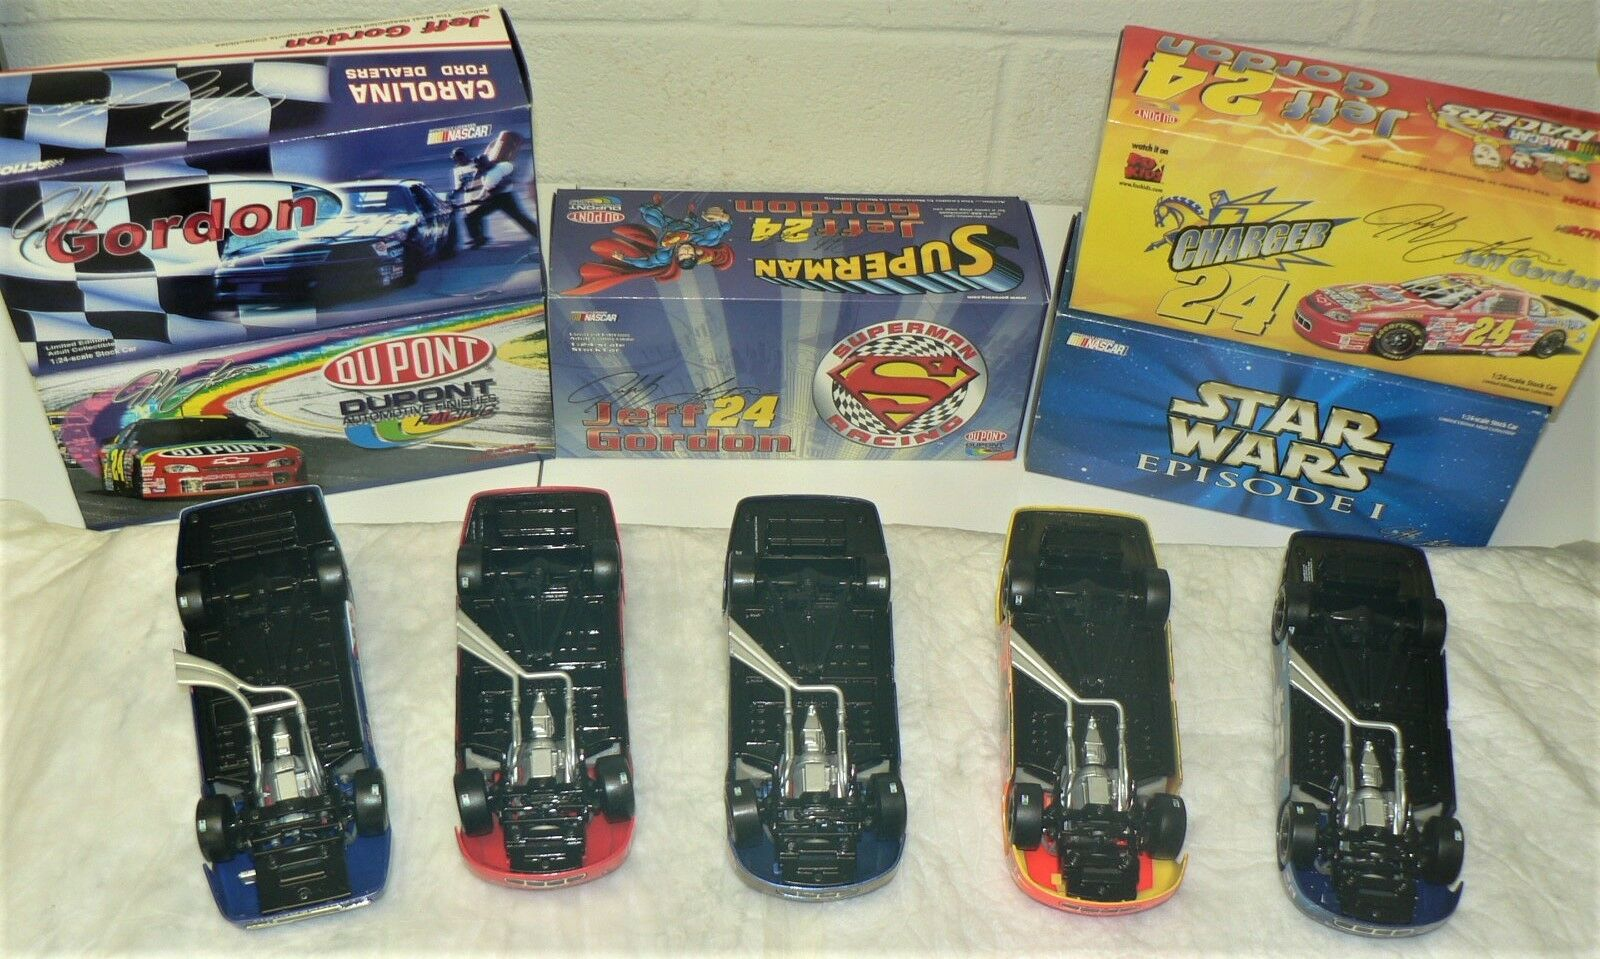 NASCAR - JEFF GORDON - Lot Lot Lot of 5 (1999) Limited Collectable Cars by ACTION Racing 6db075